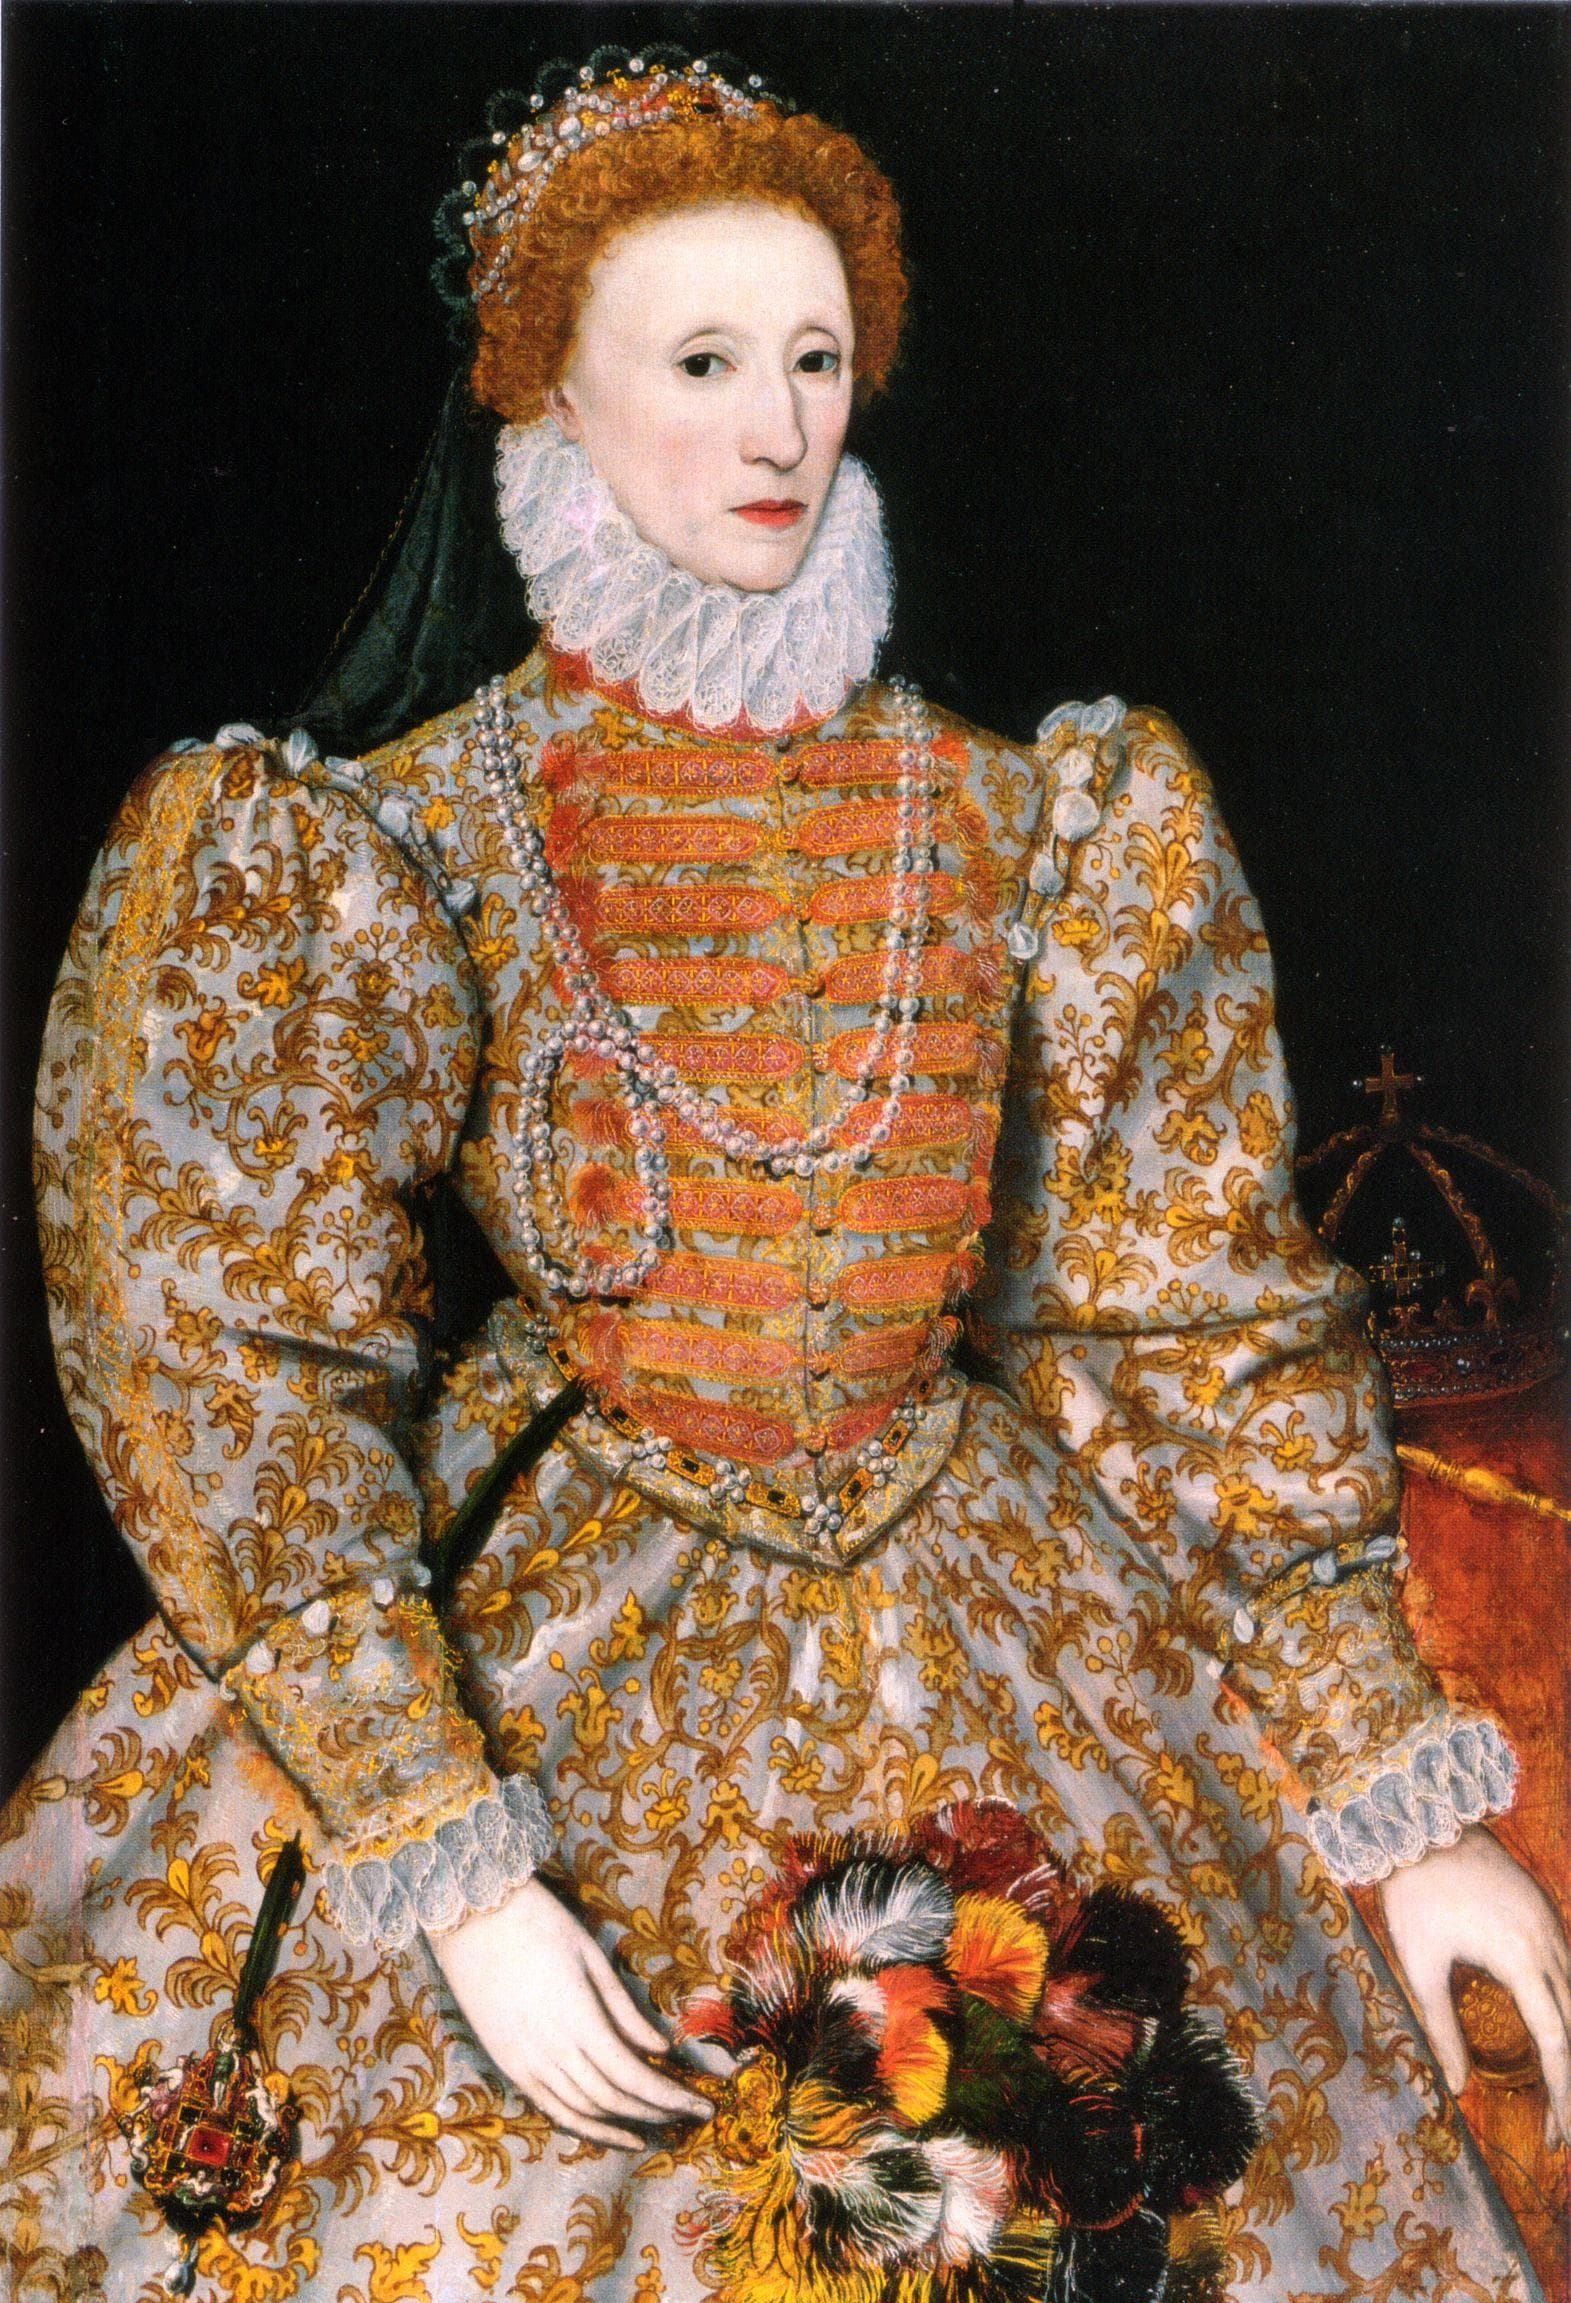 Random Thought-Provoking Historical Conspiracy Theories About Queen Elizabeth I